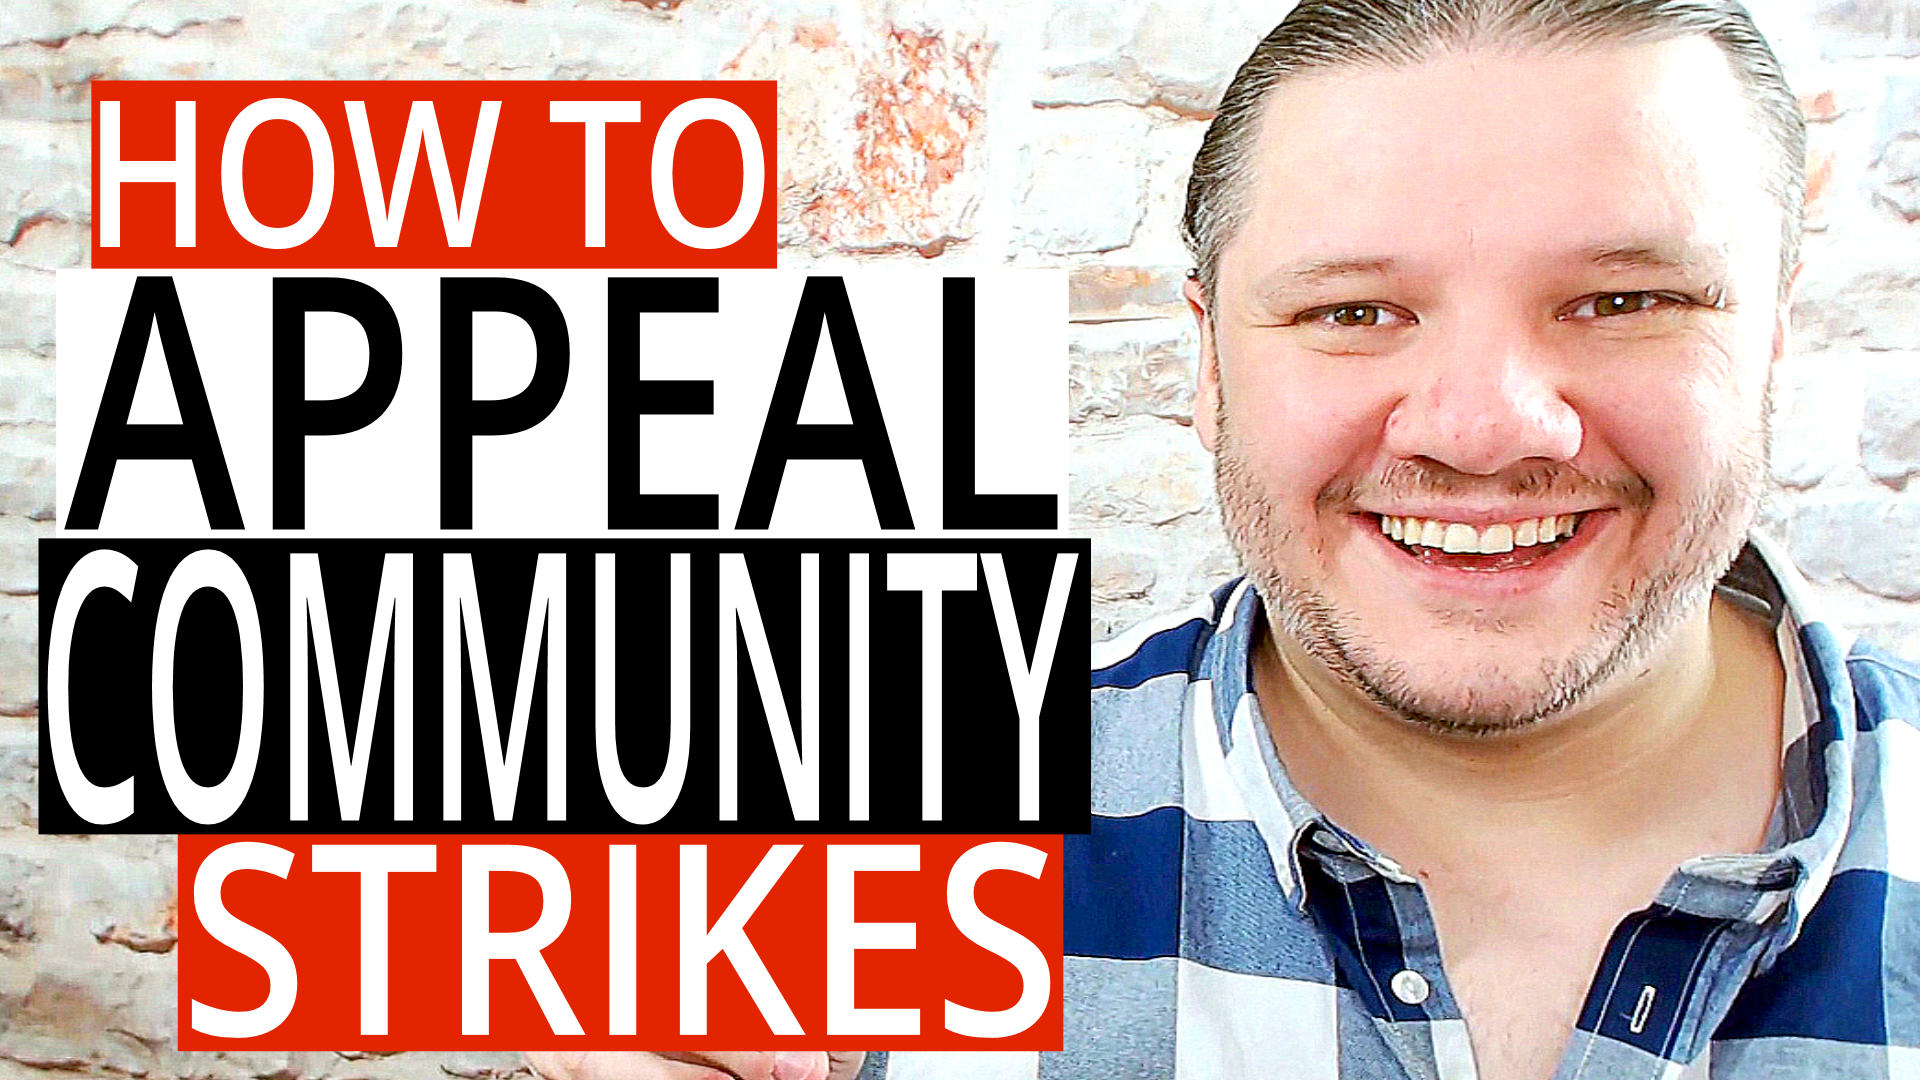 How To Appeal Community Guideline Strike On YouTube,How To Appeal Community Guideline Strike,Appeal Community Guideline Strike,Appeal Community Guideline Strike youtube,youtube community strike,community strike youtube,community strike remove,community strike appeal,remove community guidelines strike,remove community guidelines strike from youtube,strikes,remove community strikes,youtube,remove youtube strike,asyt,remove youtube strikes,remove youtube strikes 2018